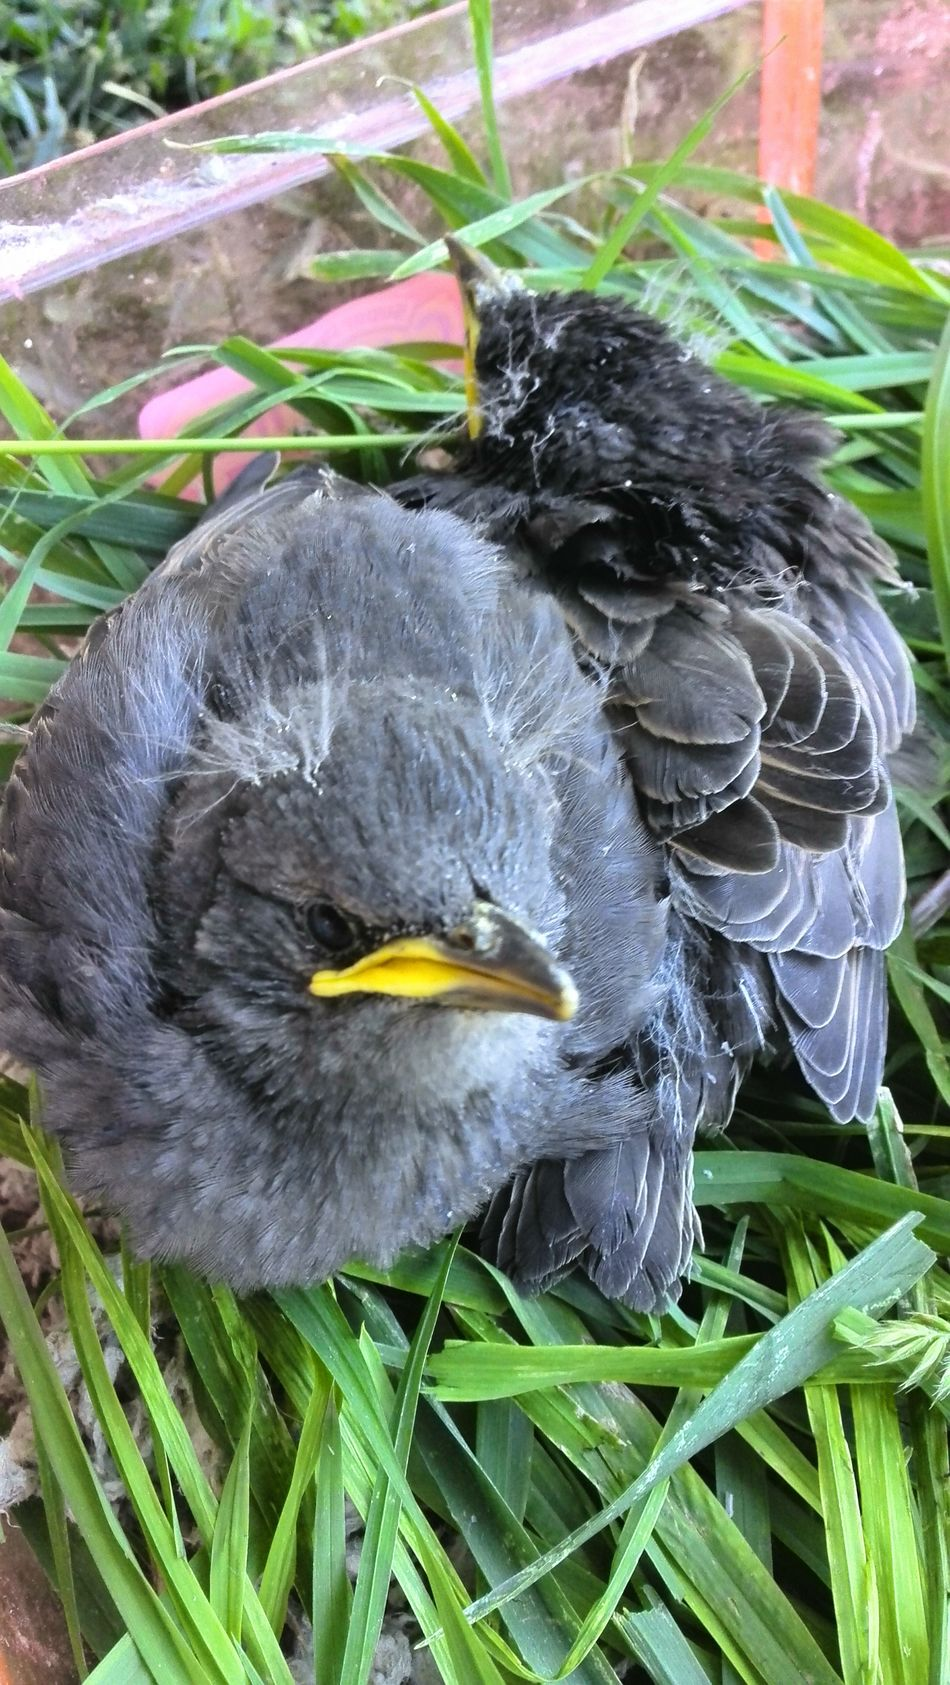 Baby Birds in human made Nest and theyre getting bigger. Nestlings The Essence Of Summer My Own Thing The Great Outdoors - 2016 EyeEm Awards The Portraitist - 2016 EyeEm Awards The Photojournalist - 2016 EyeEm Awards Showcase June